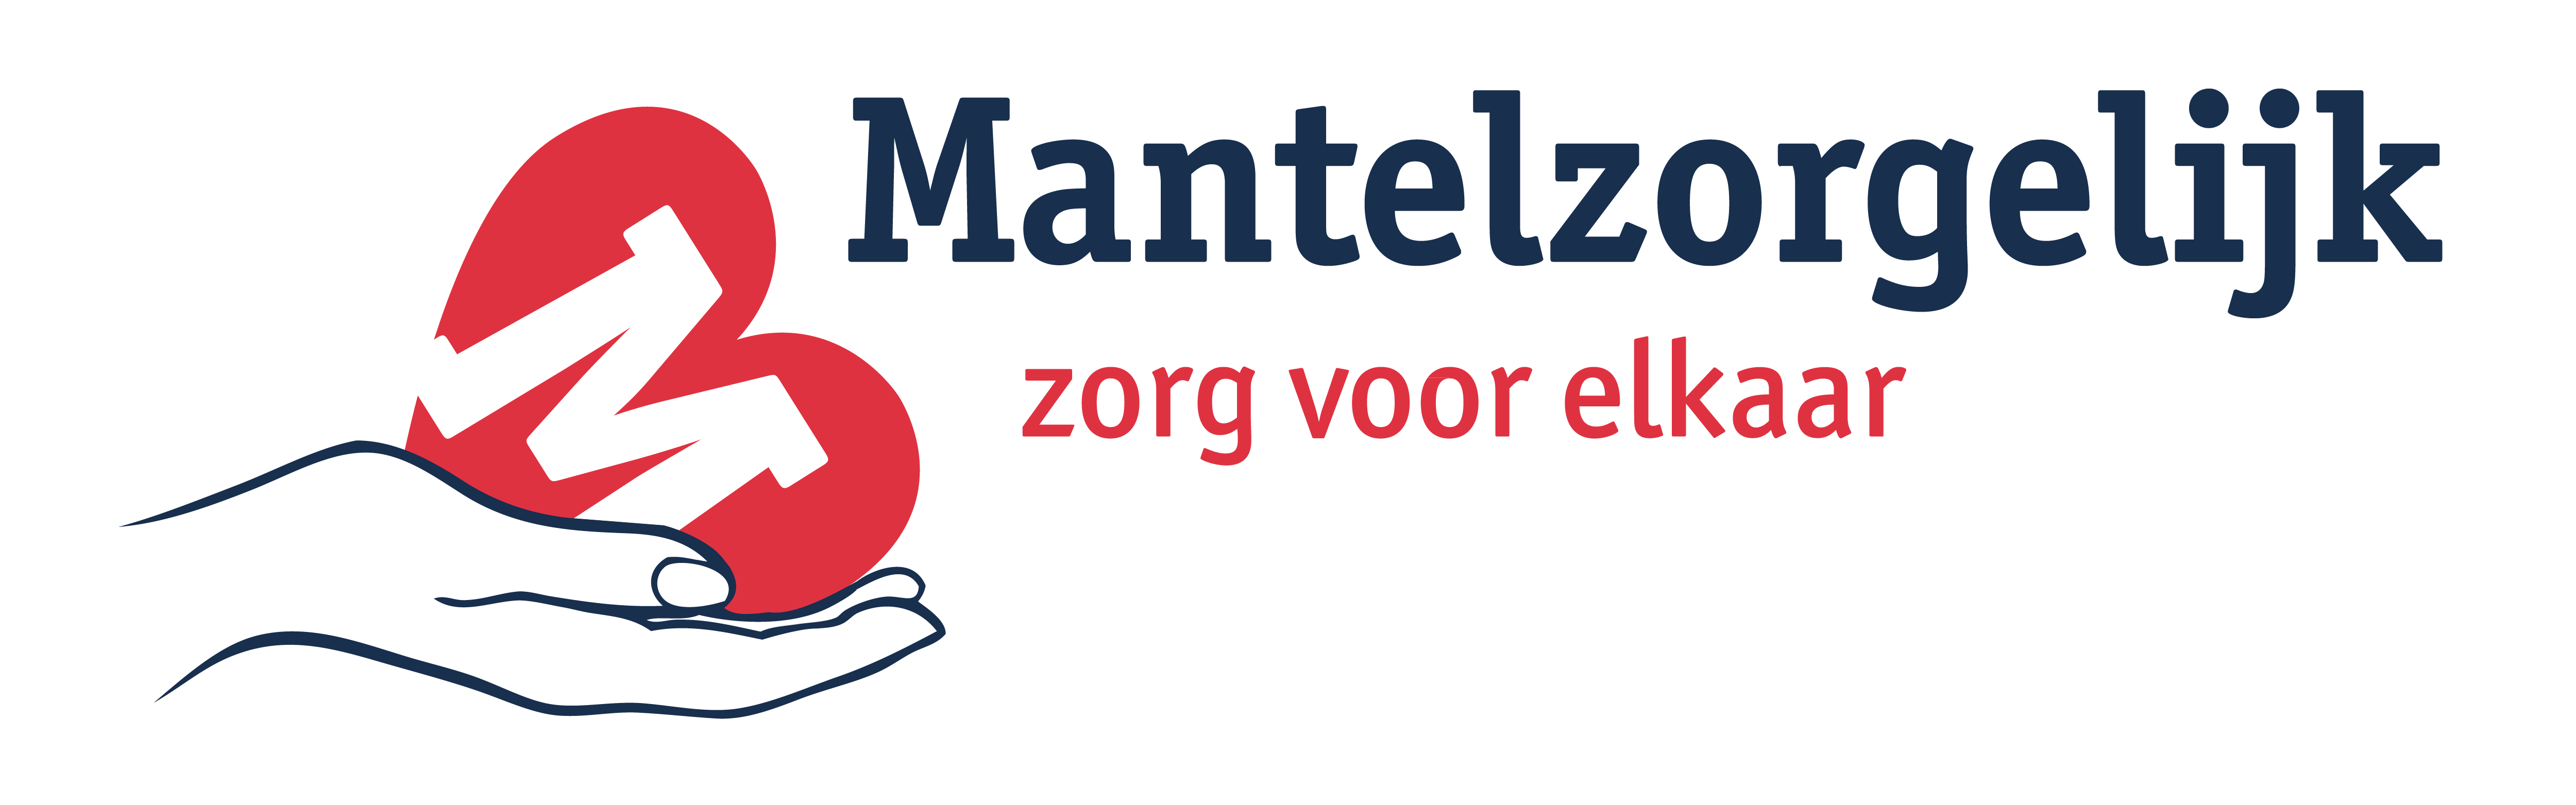 Mantelzorgelijk